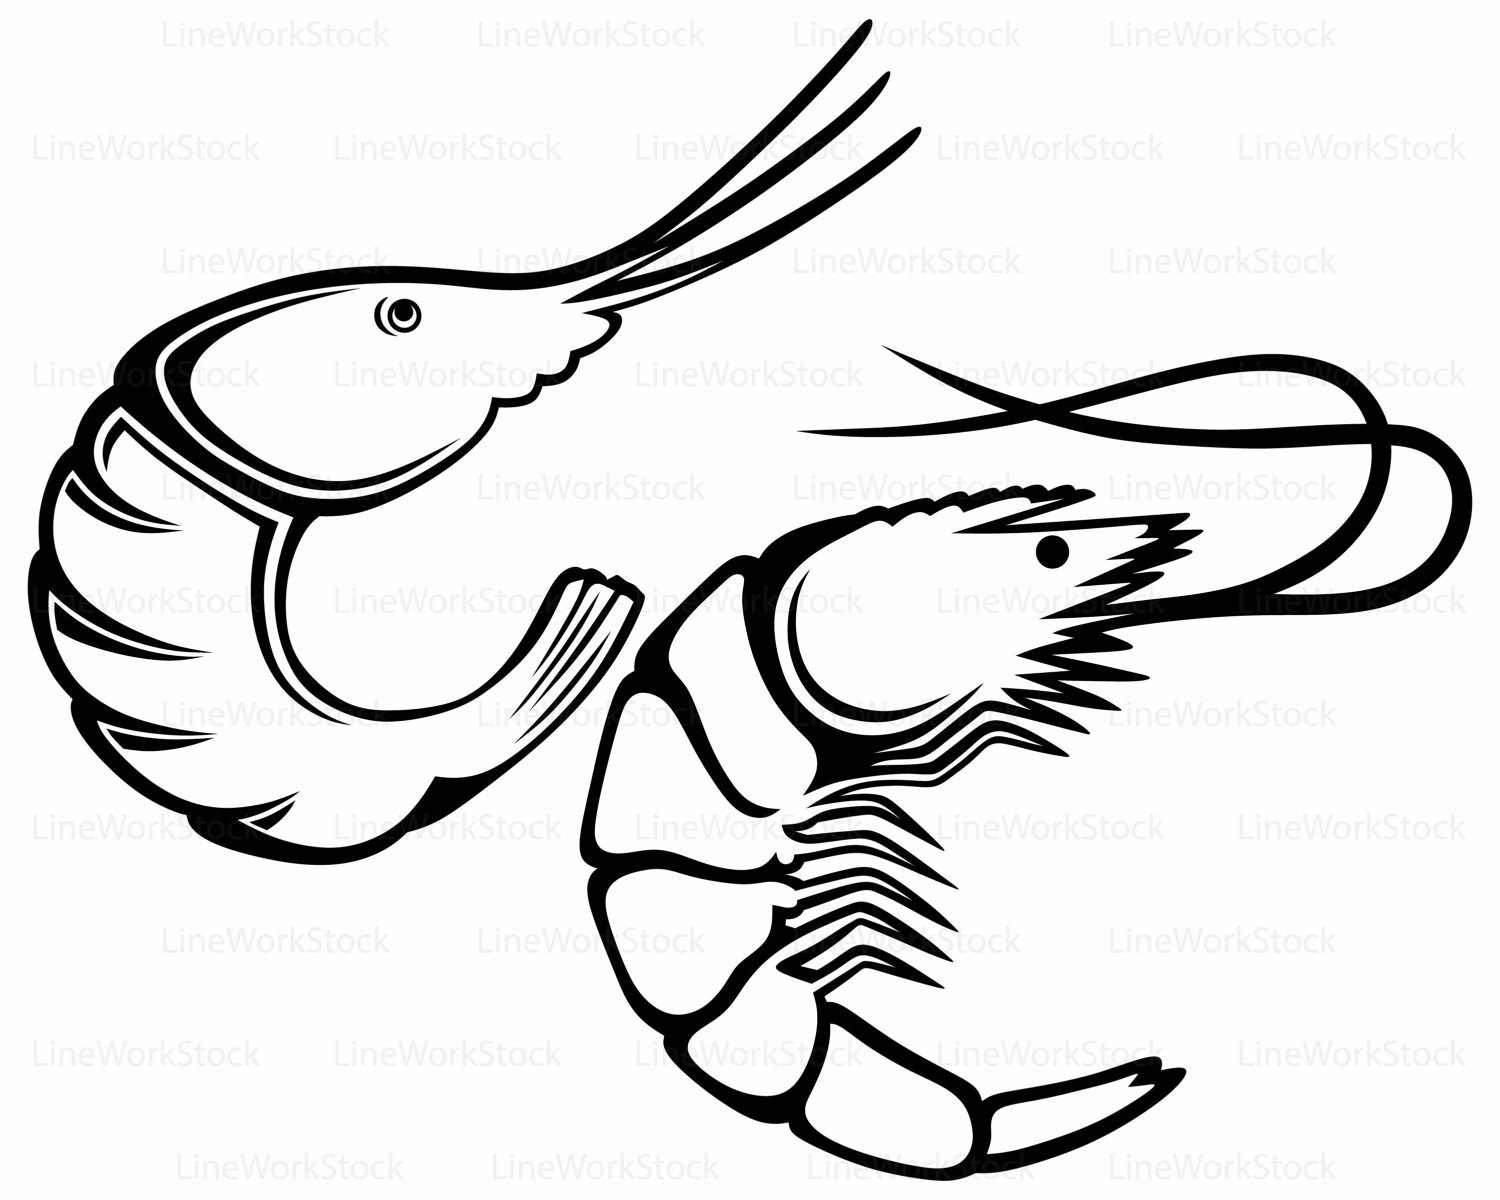 Collection of Shrimp clipart.